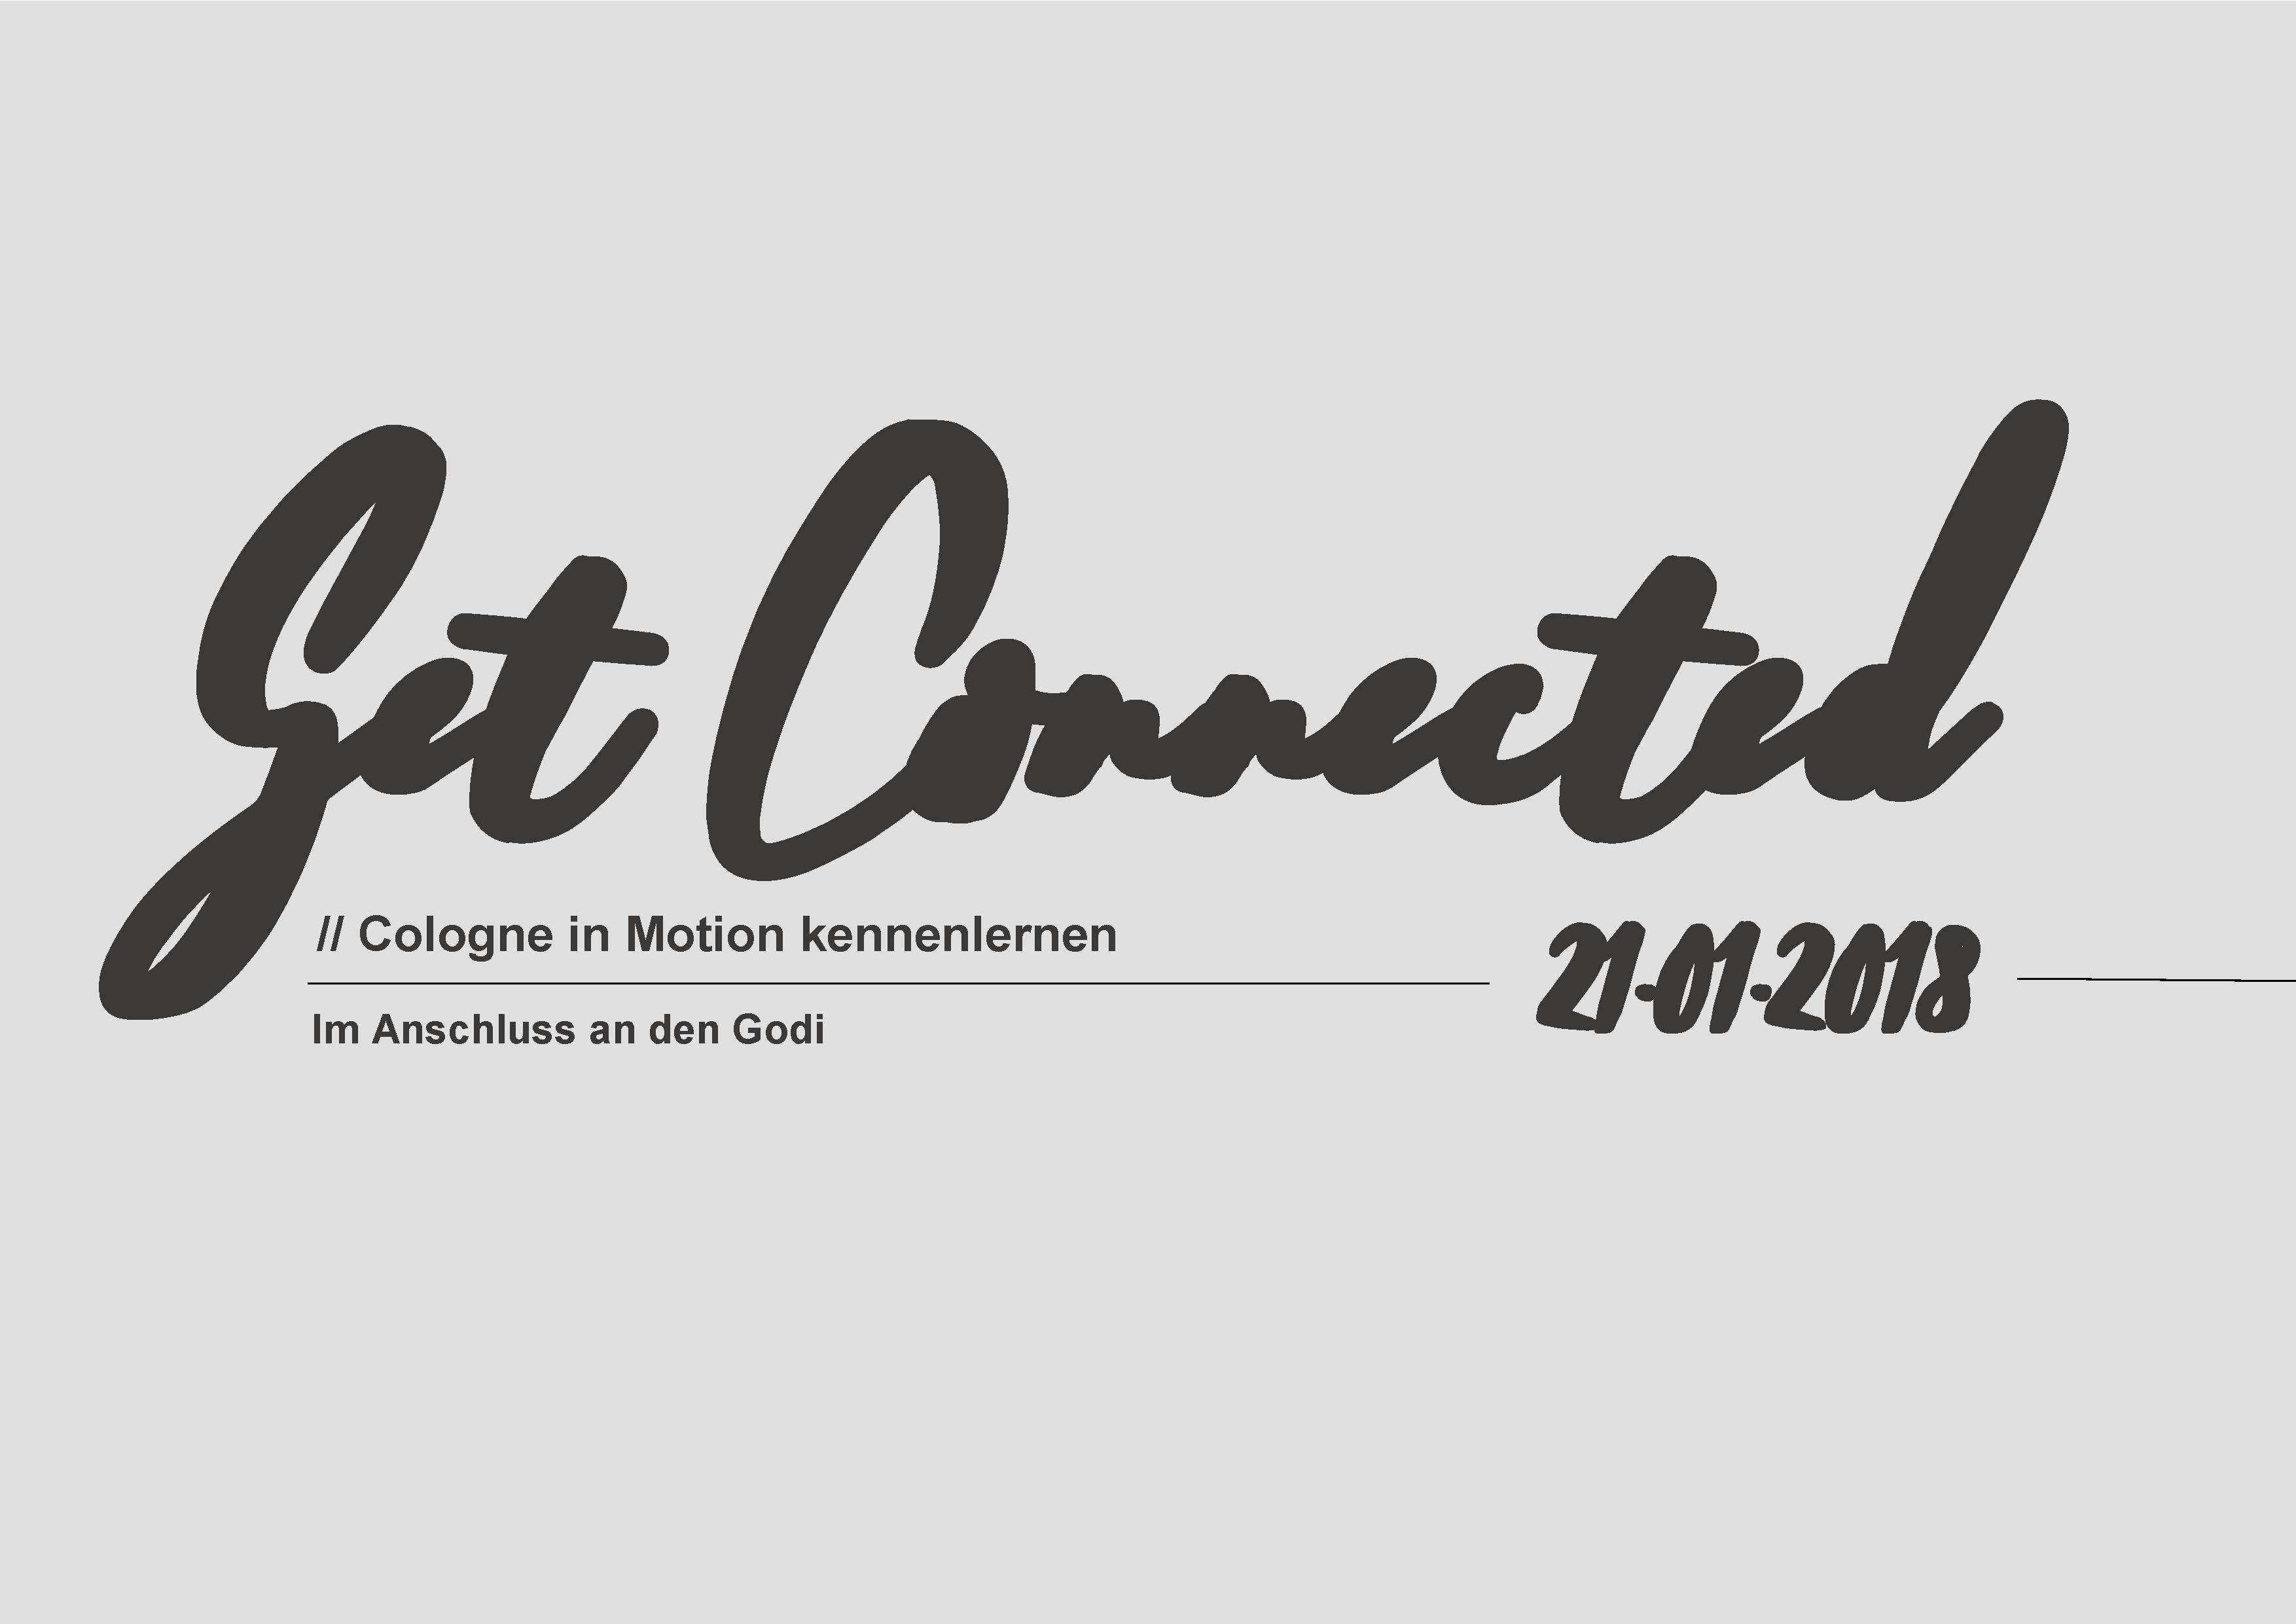 Get connected 21.01.2018